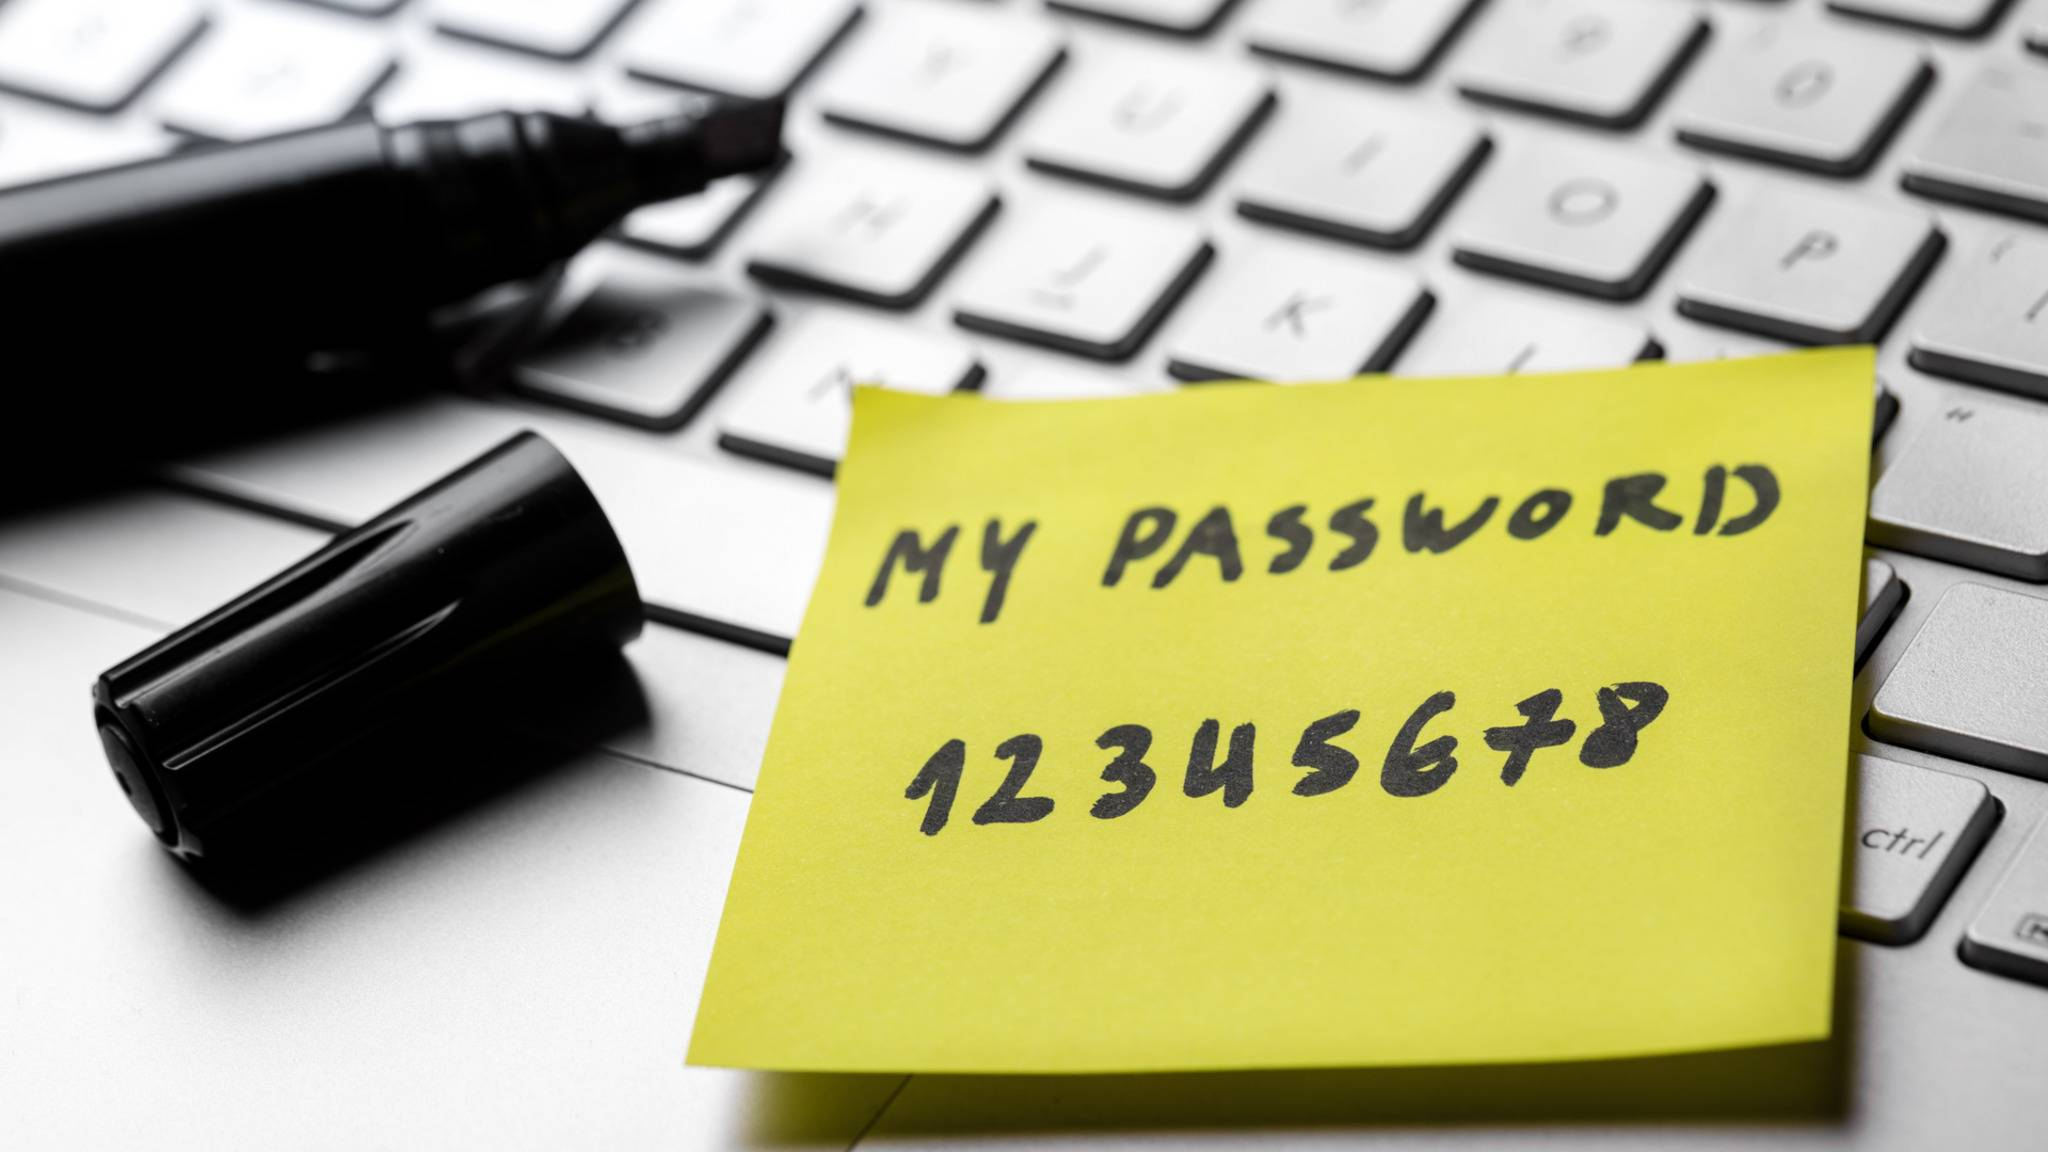 passwort-passwoerter-password